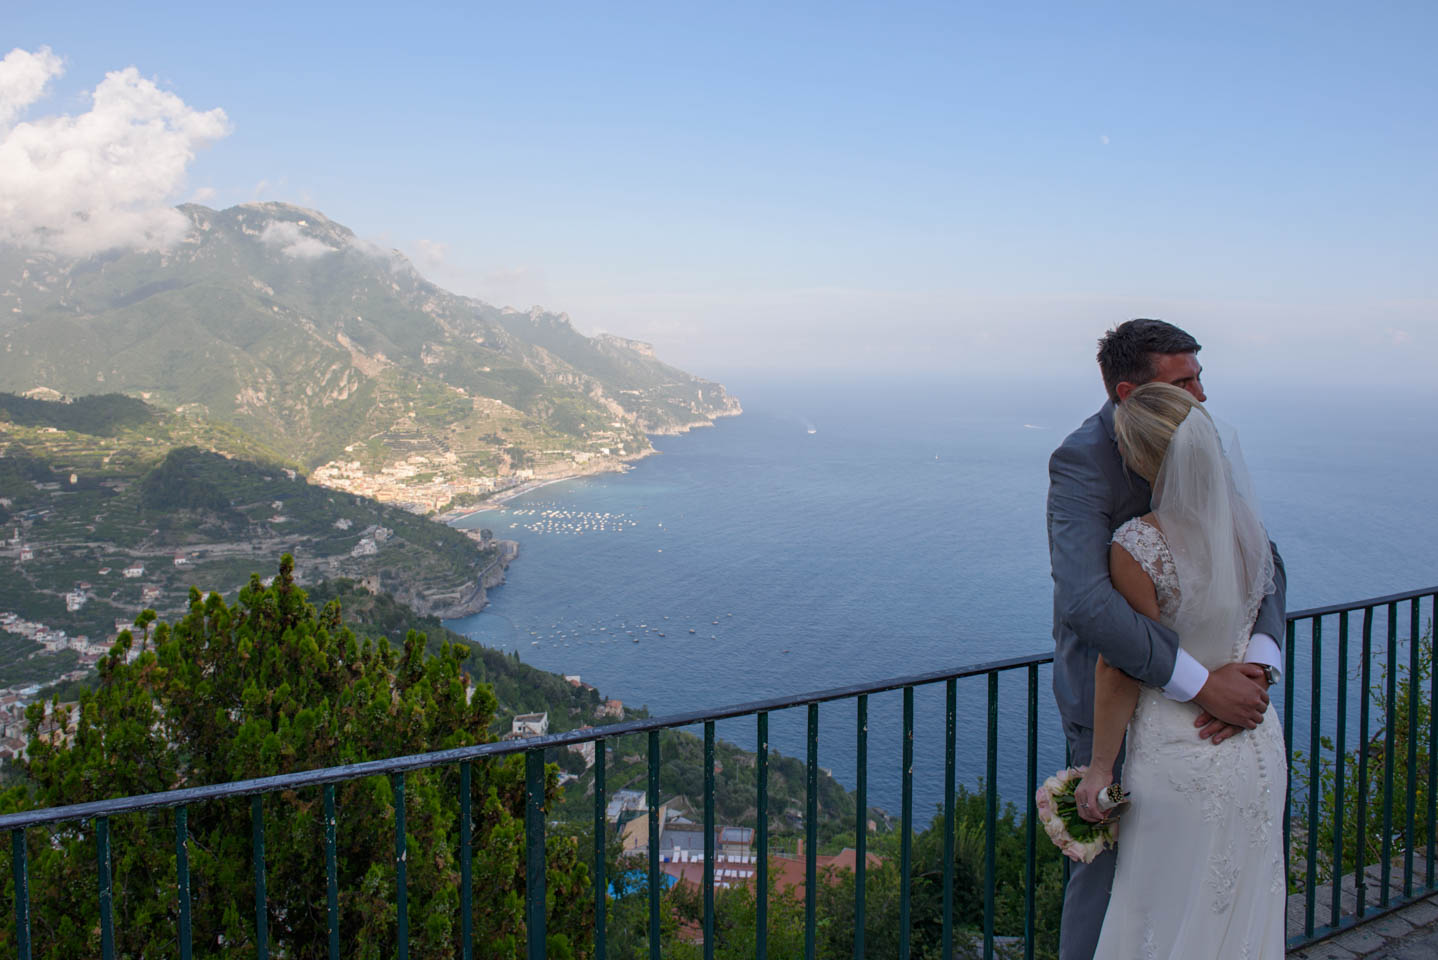 FineArtStudio_Ravello_Timothy&Angela_Street_View_Ravello_Wedding